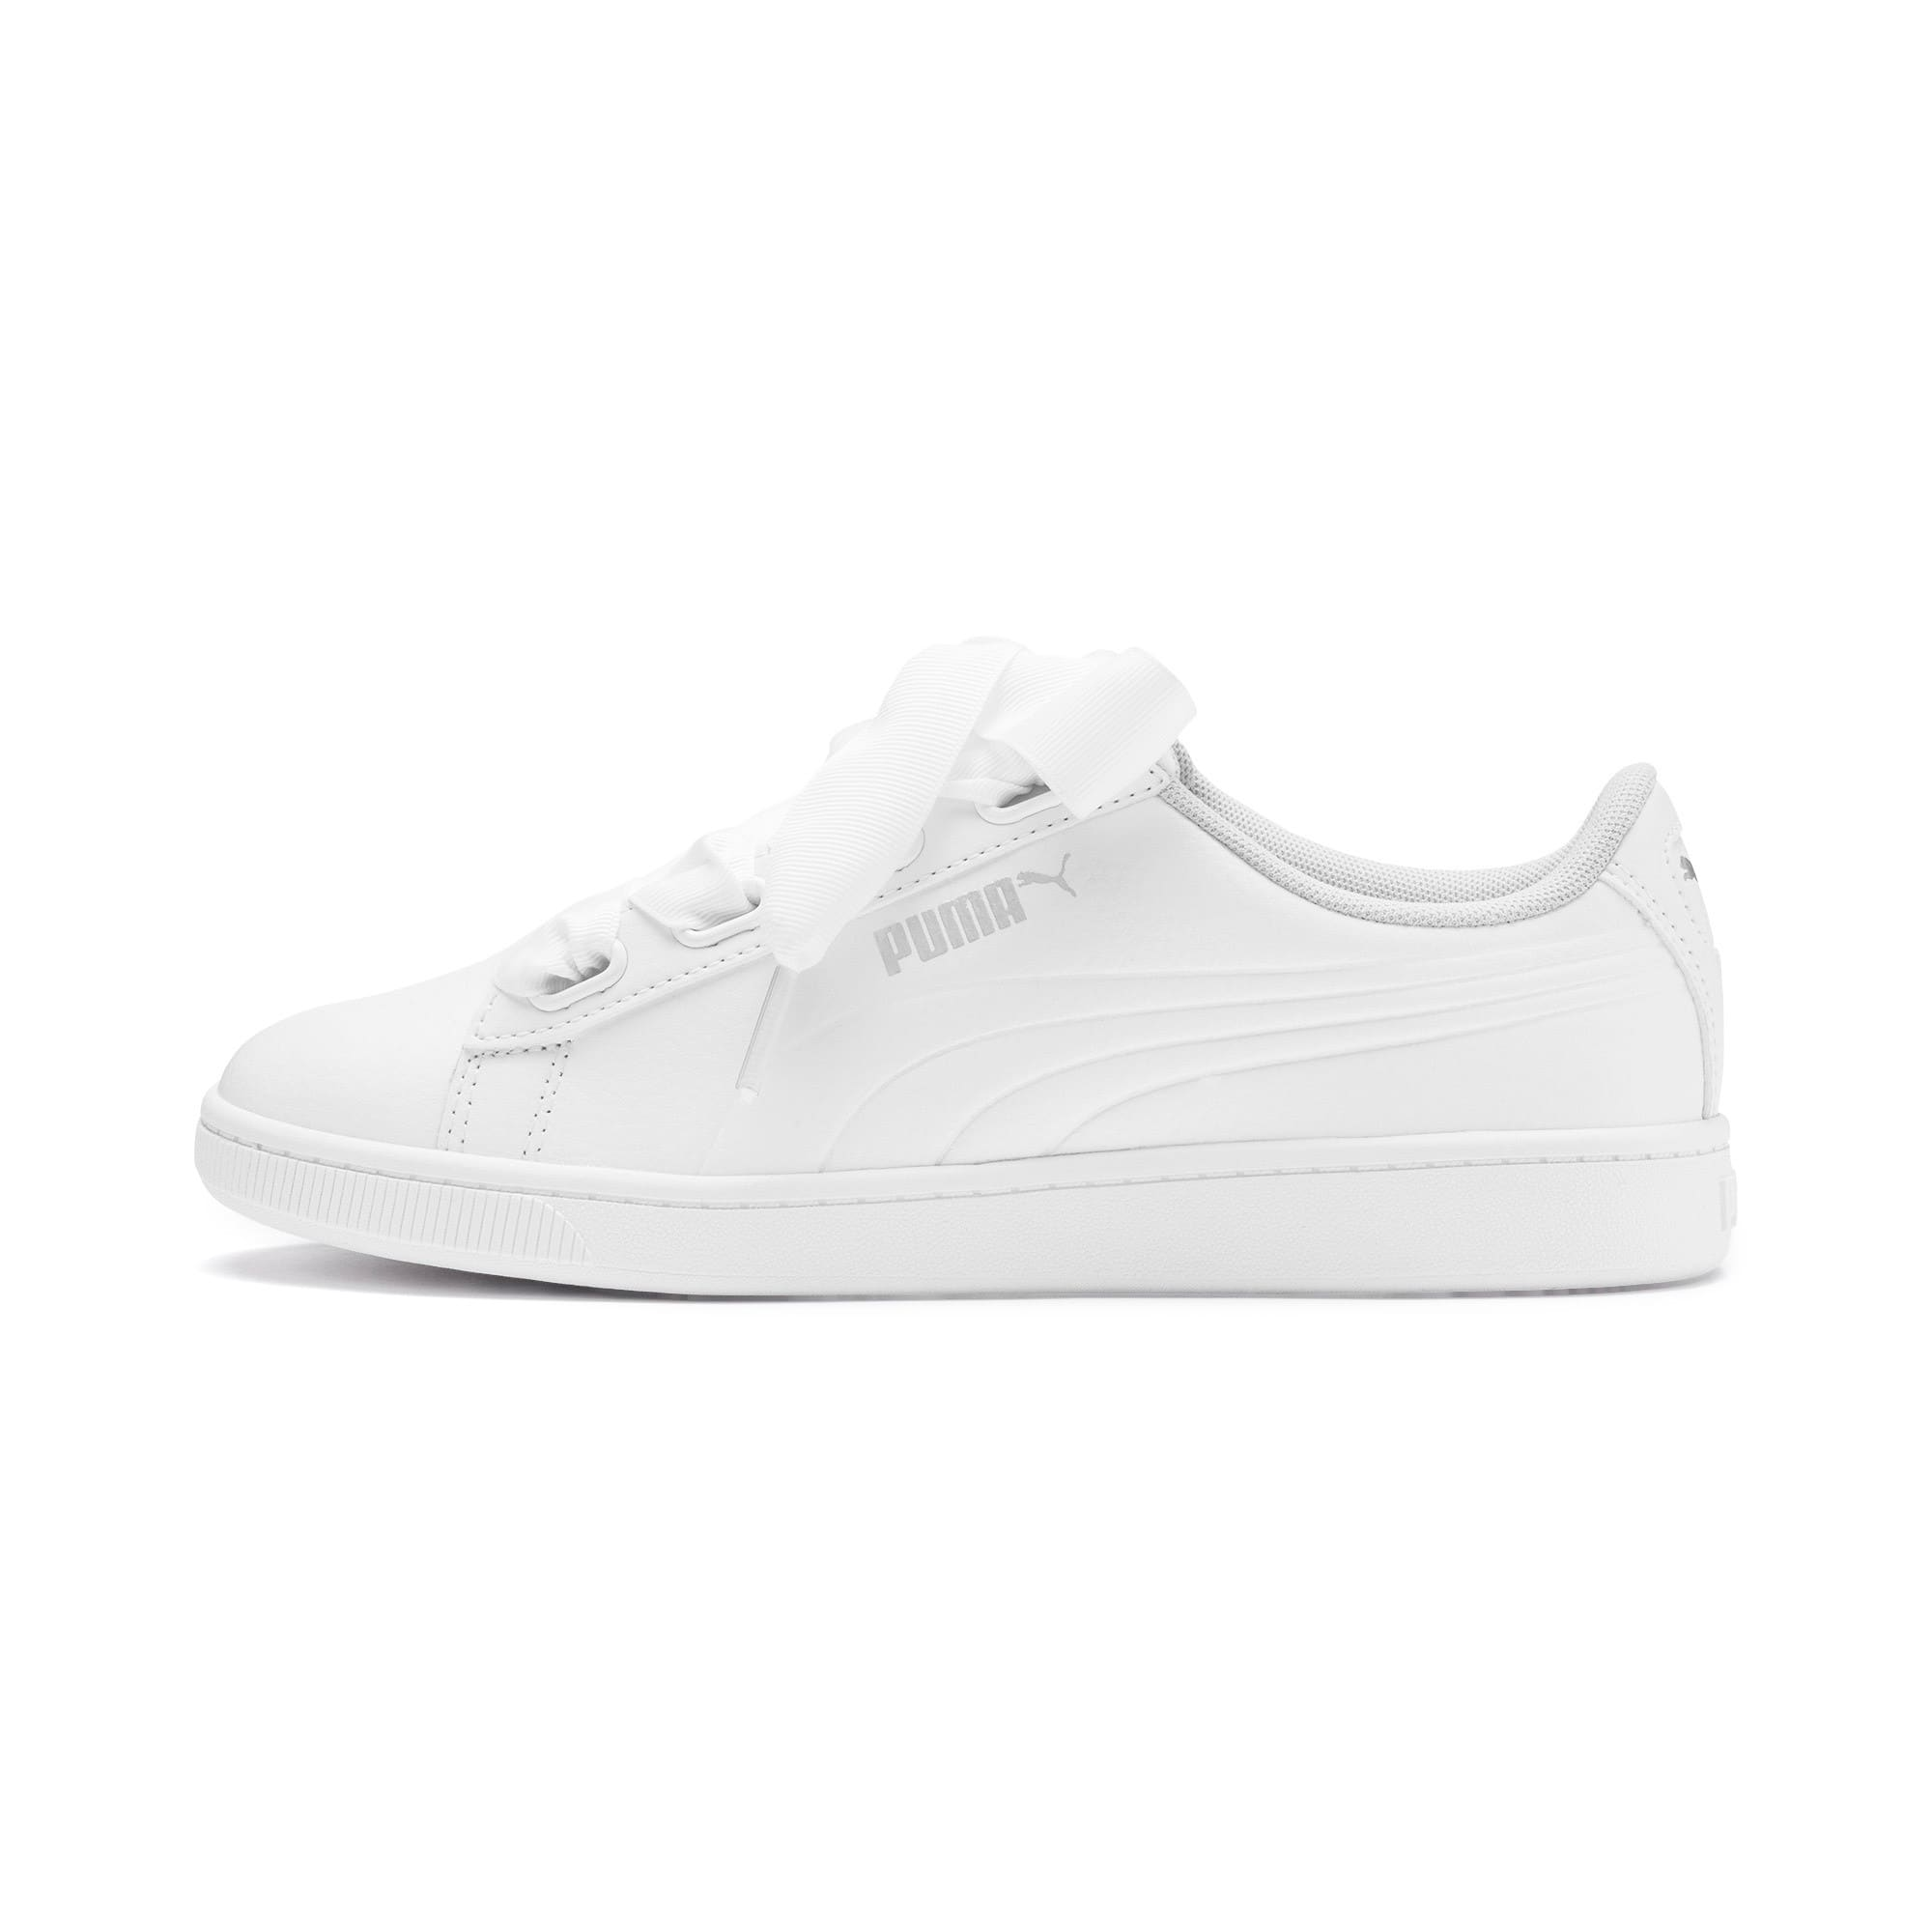 Vikky v2 Ribbon SL Youth Trainers, White-Silver-Gray Violet, large